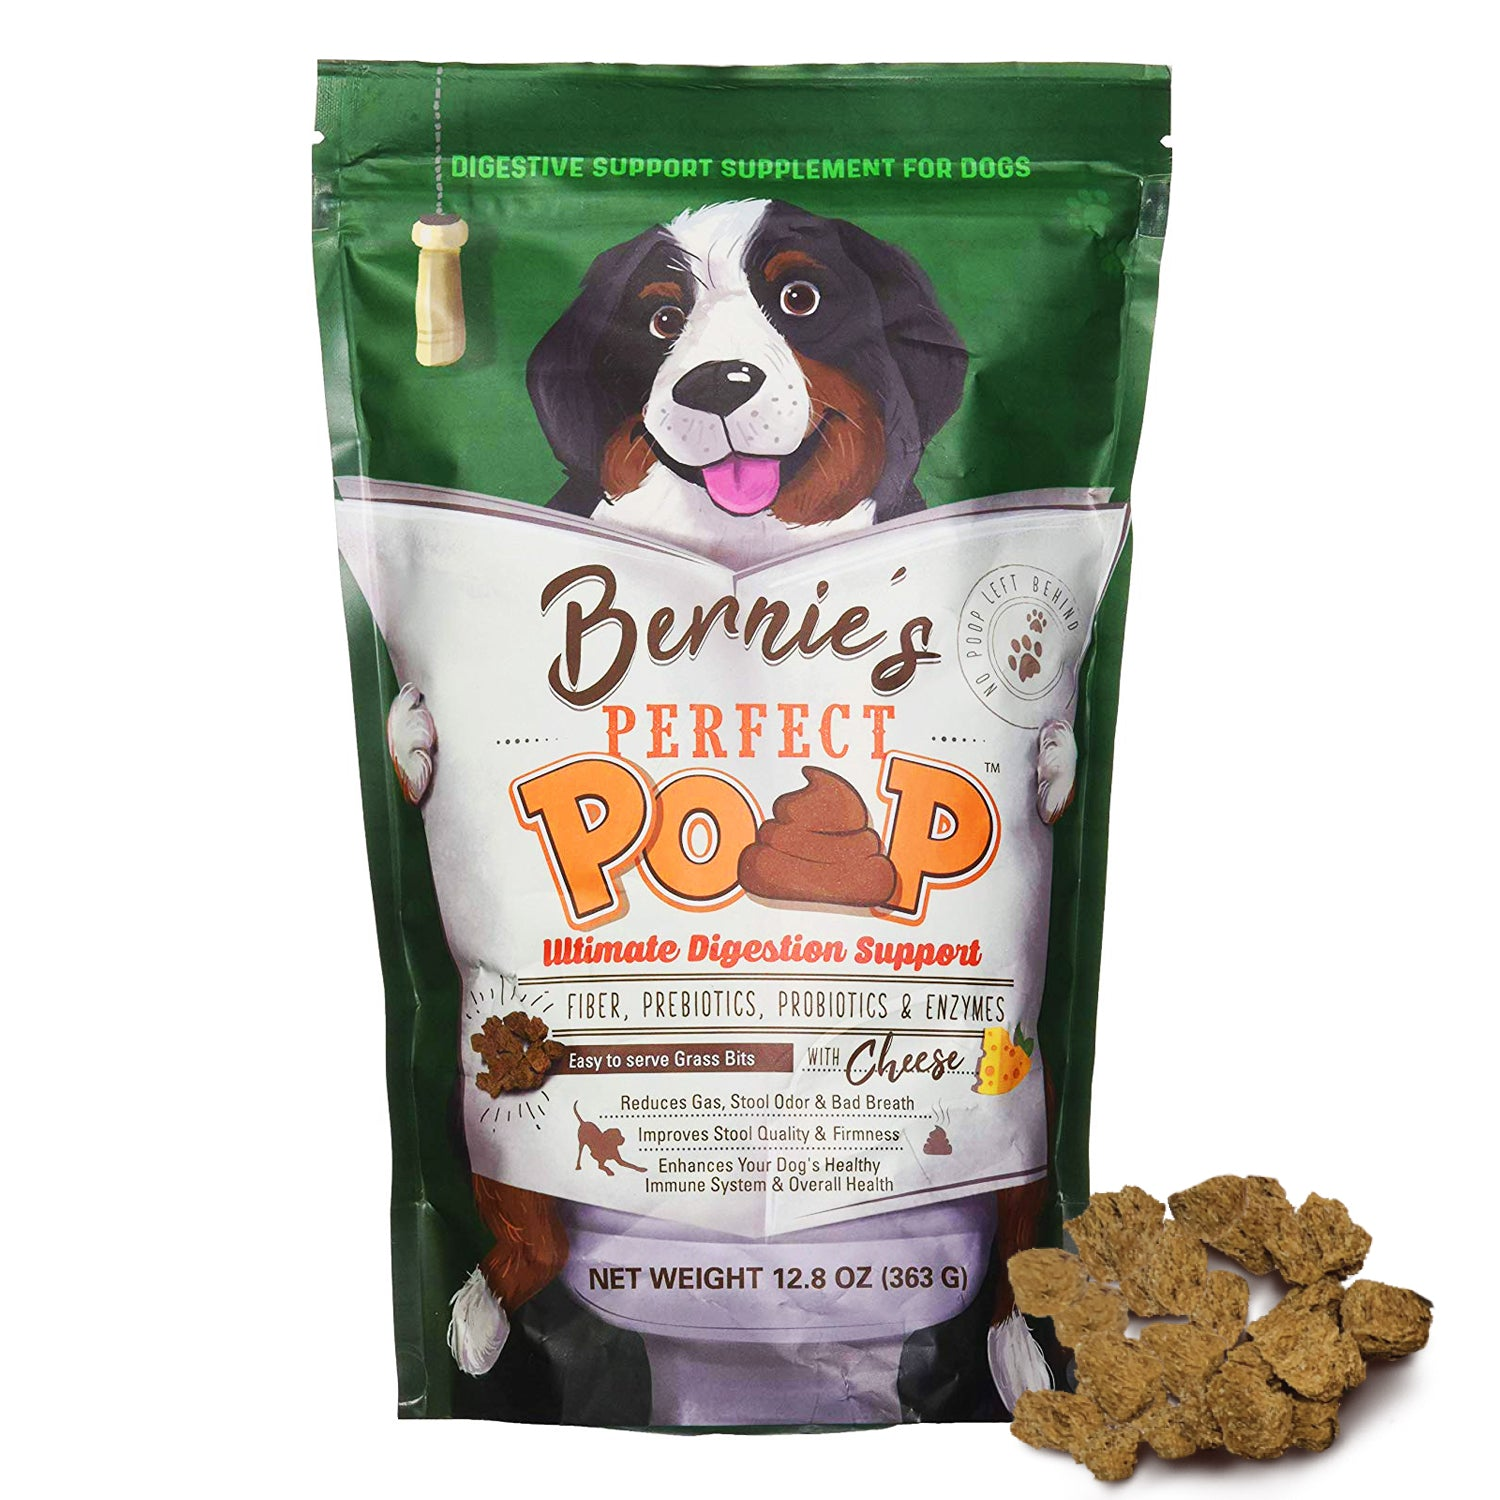 Bernie's Pefect Poop Dog Digestion Supplement: Fiber, Prebiotics, Probiotics & Enzymes Relieves Digestion, Optimizes Stool, Improves Health & Wellness